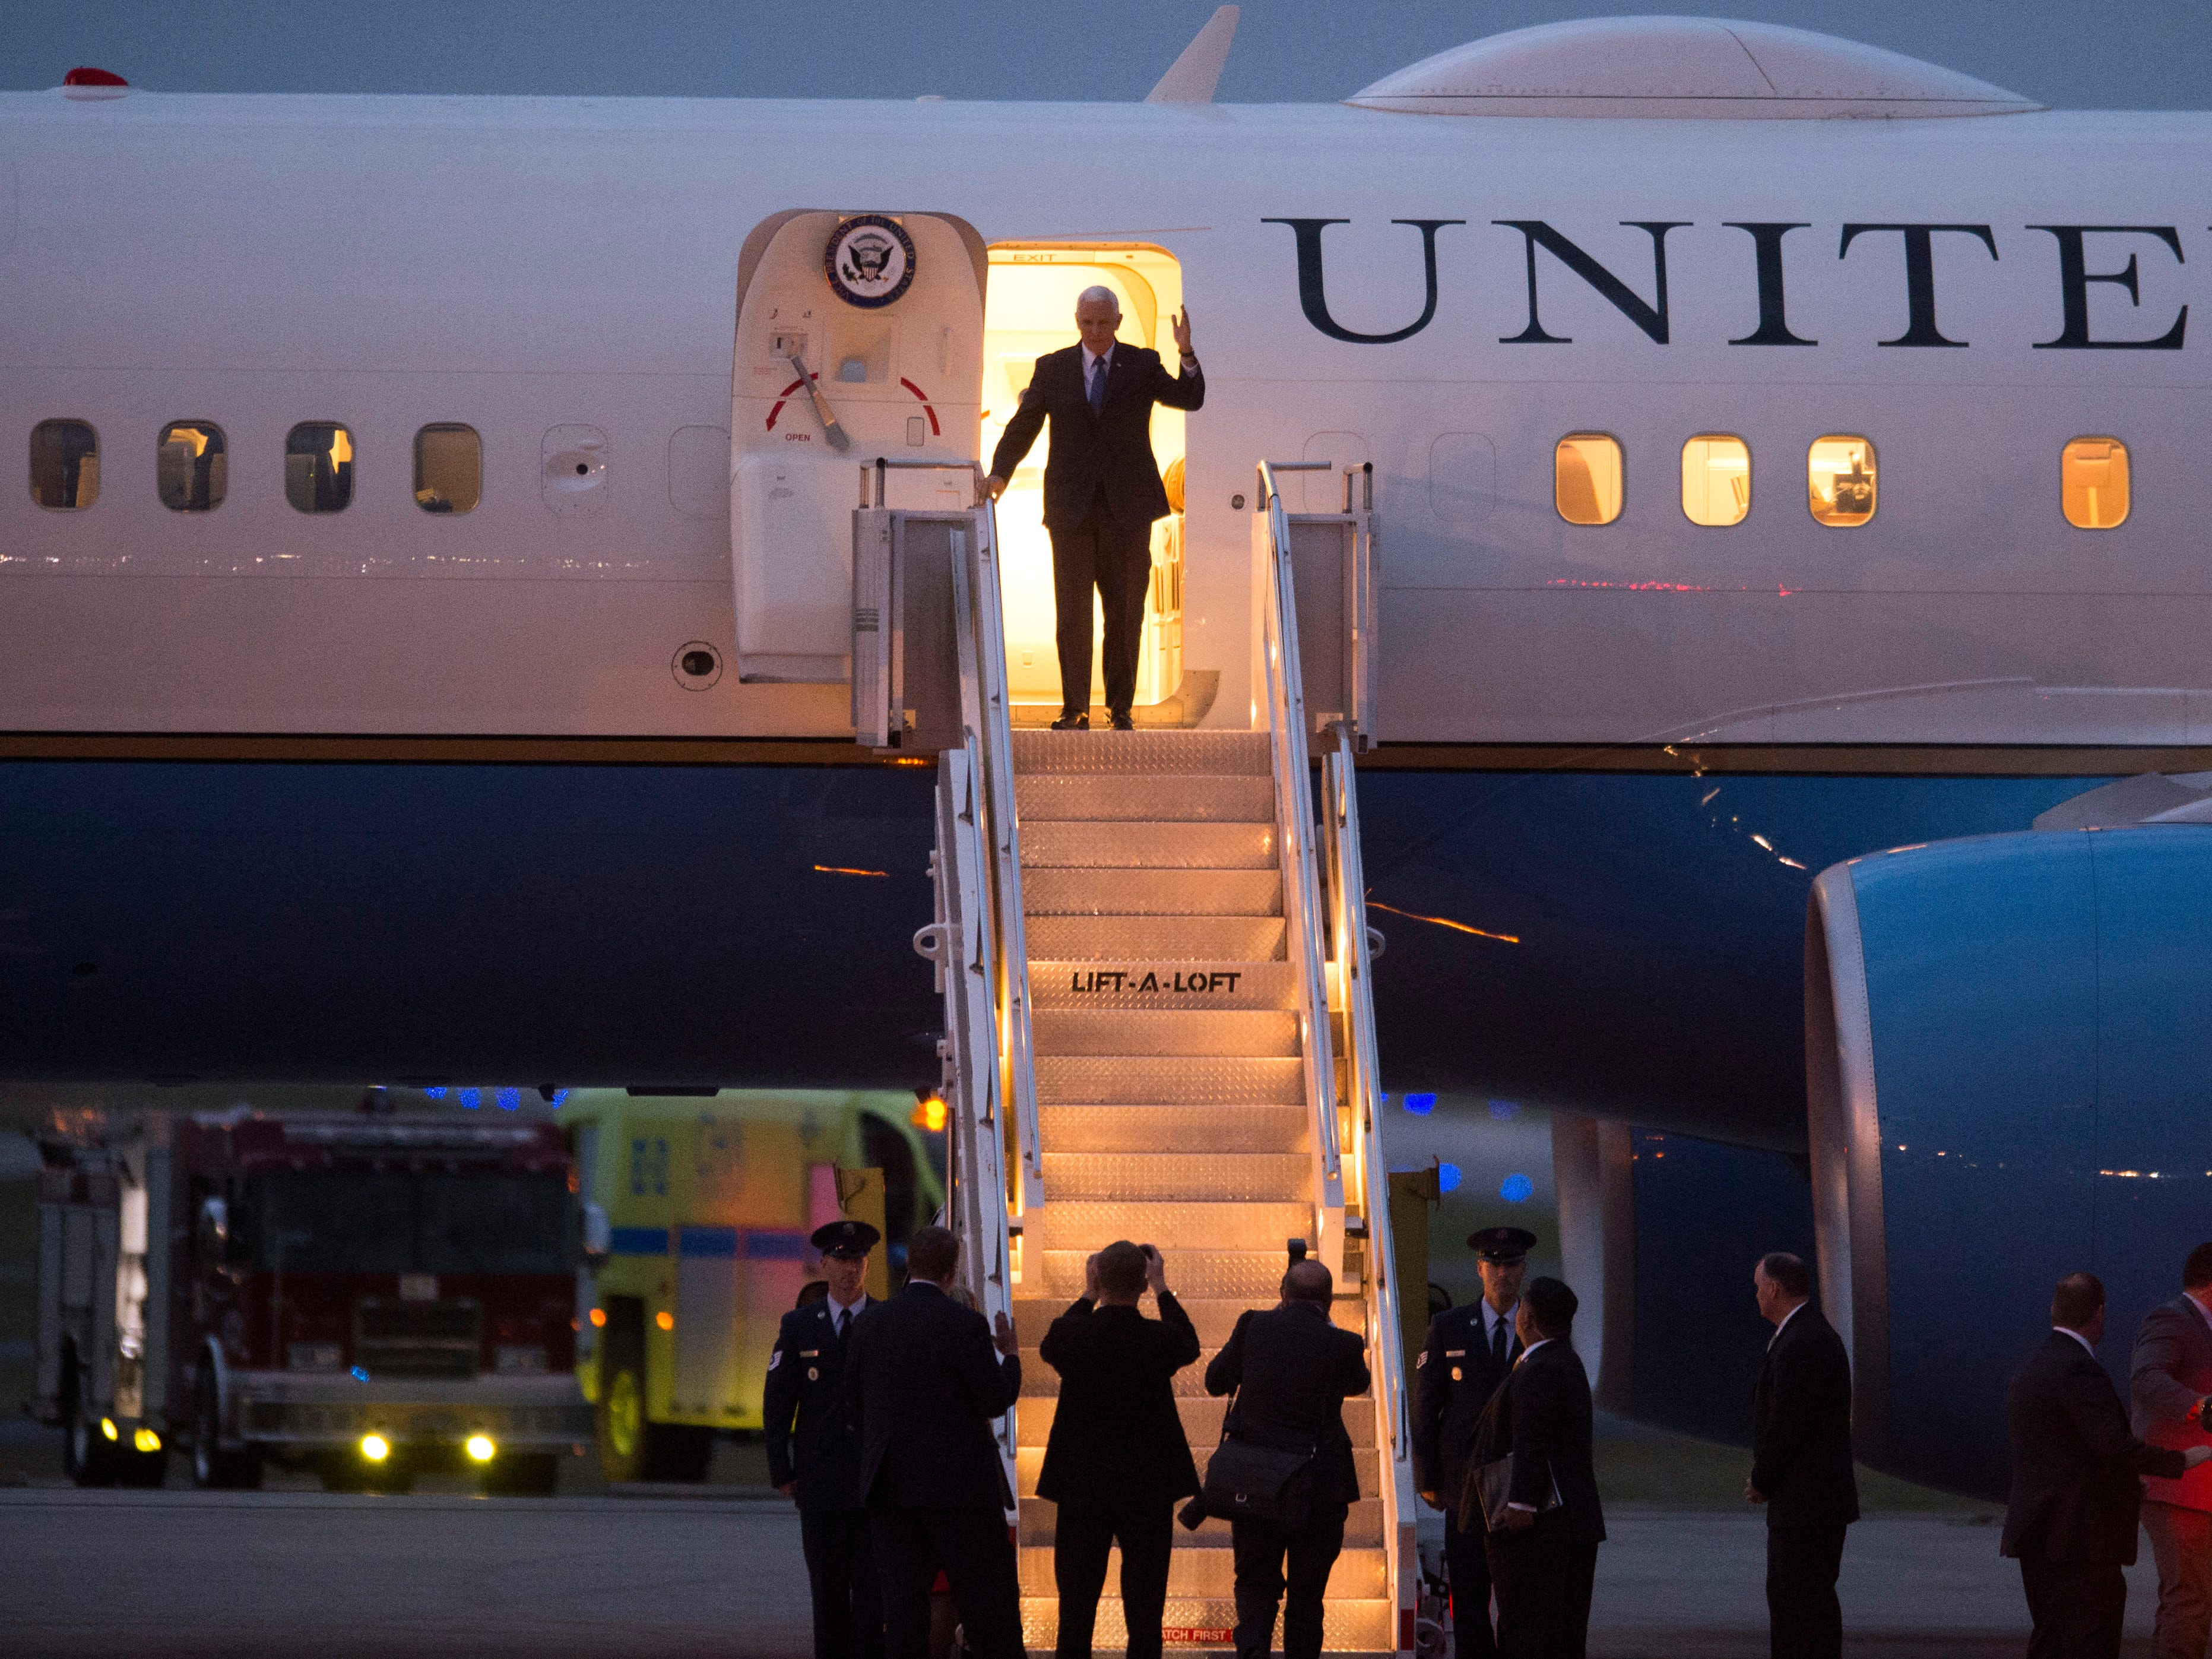 Vice President Mike Pence arrives to the Wilson Air Center on Air Force Two on Sunday, November 4, 2018.